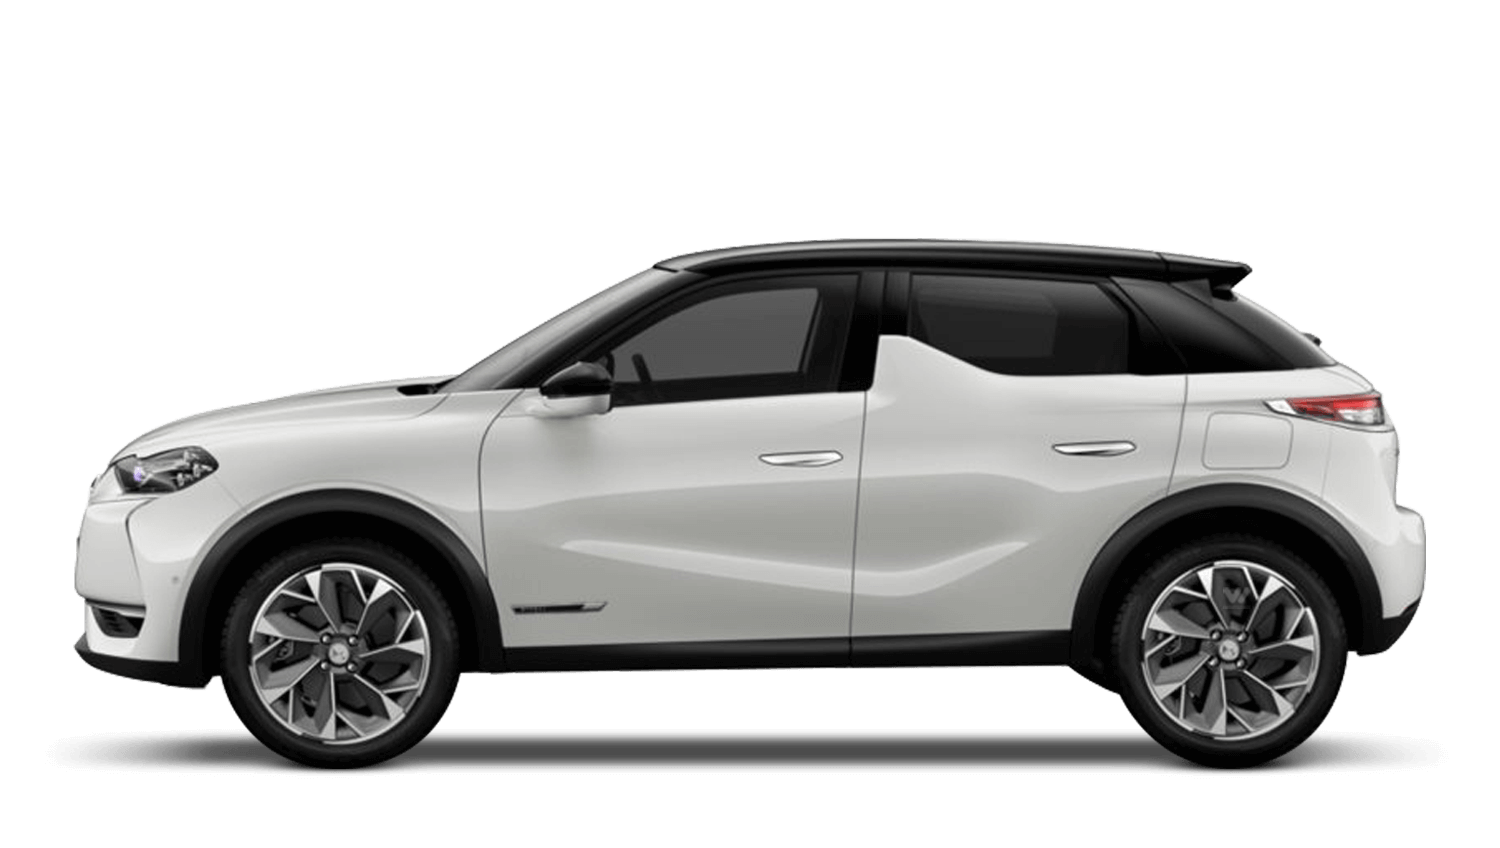 Pearl Crystal DS DS 3 Crossback E Tense